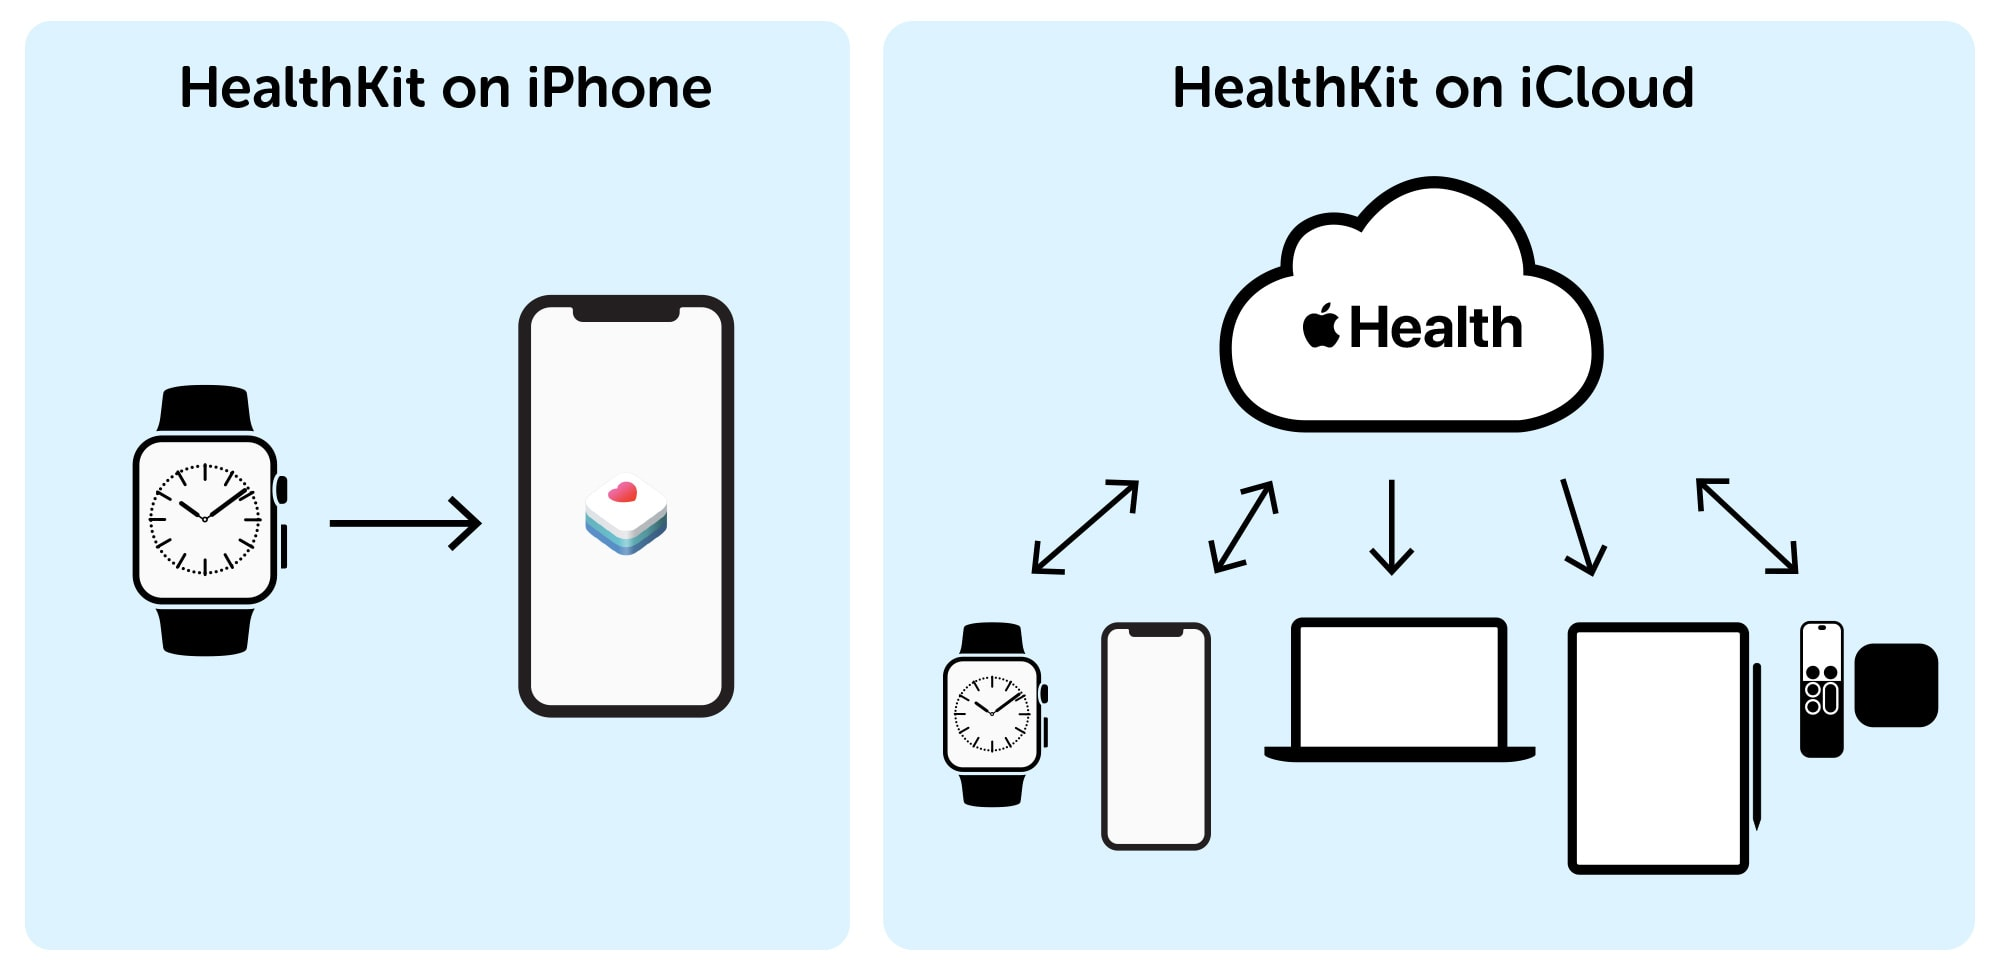 Why HealthKit needs to move to iCloud: Apple needs to free HealthKit from the iPhone.